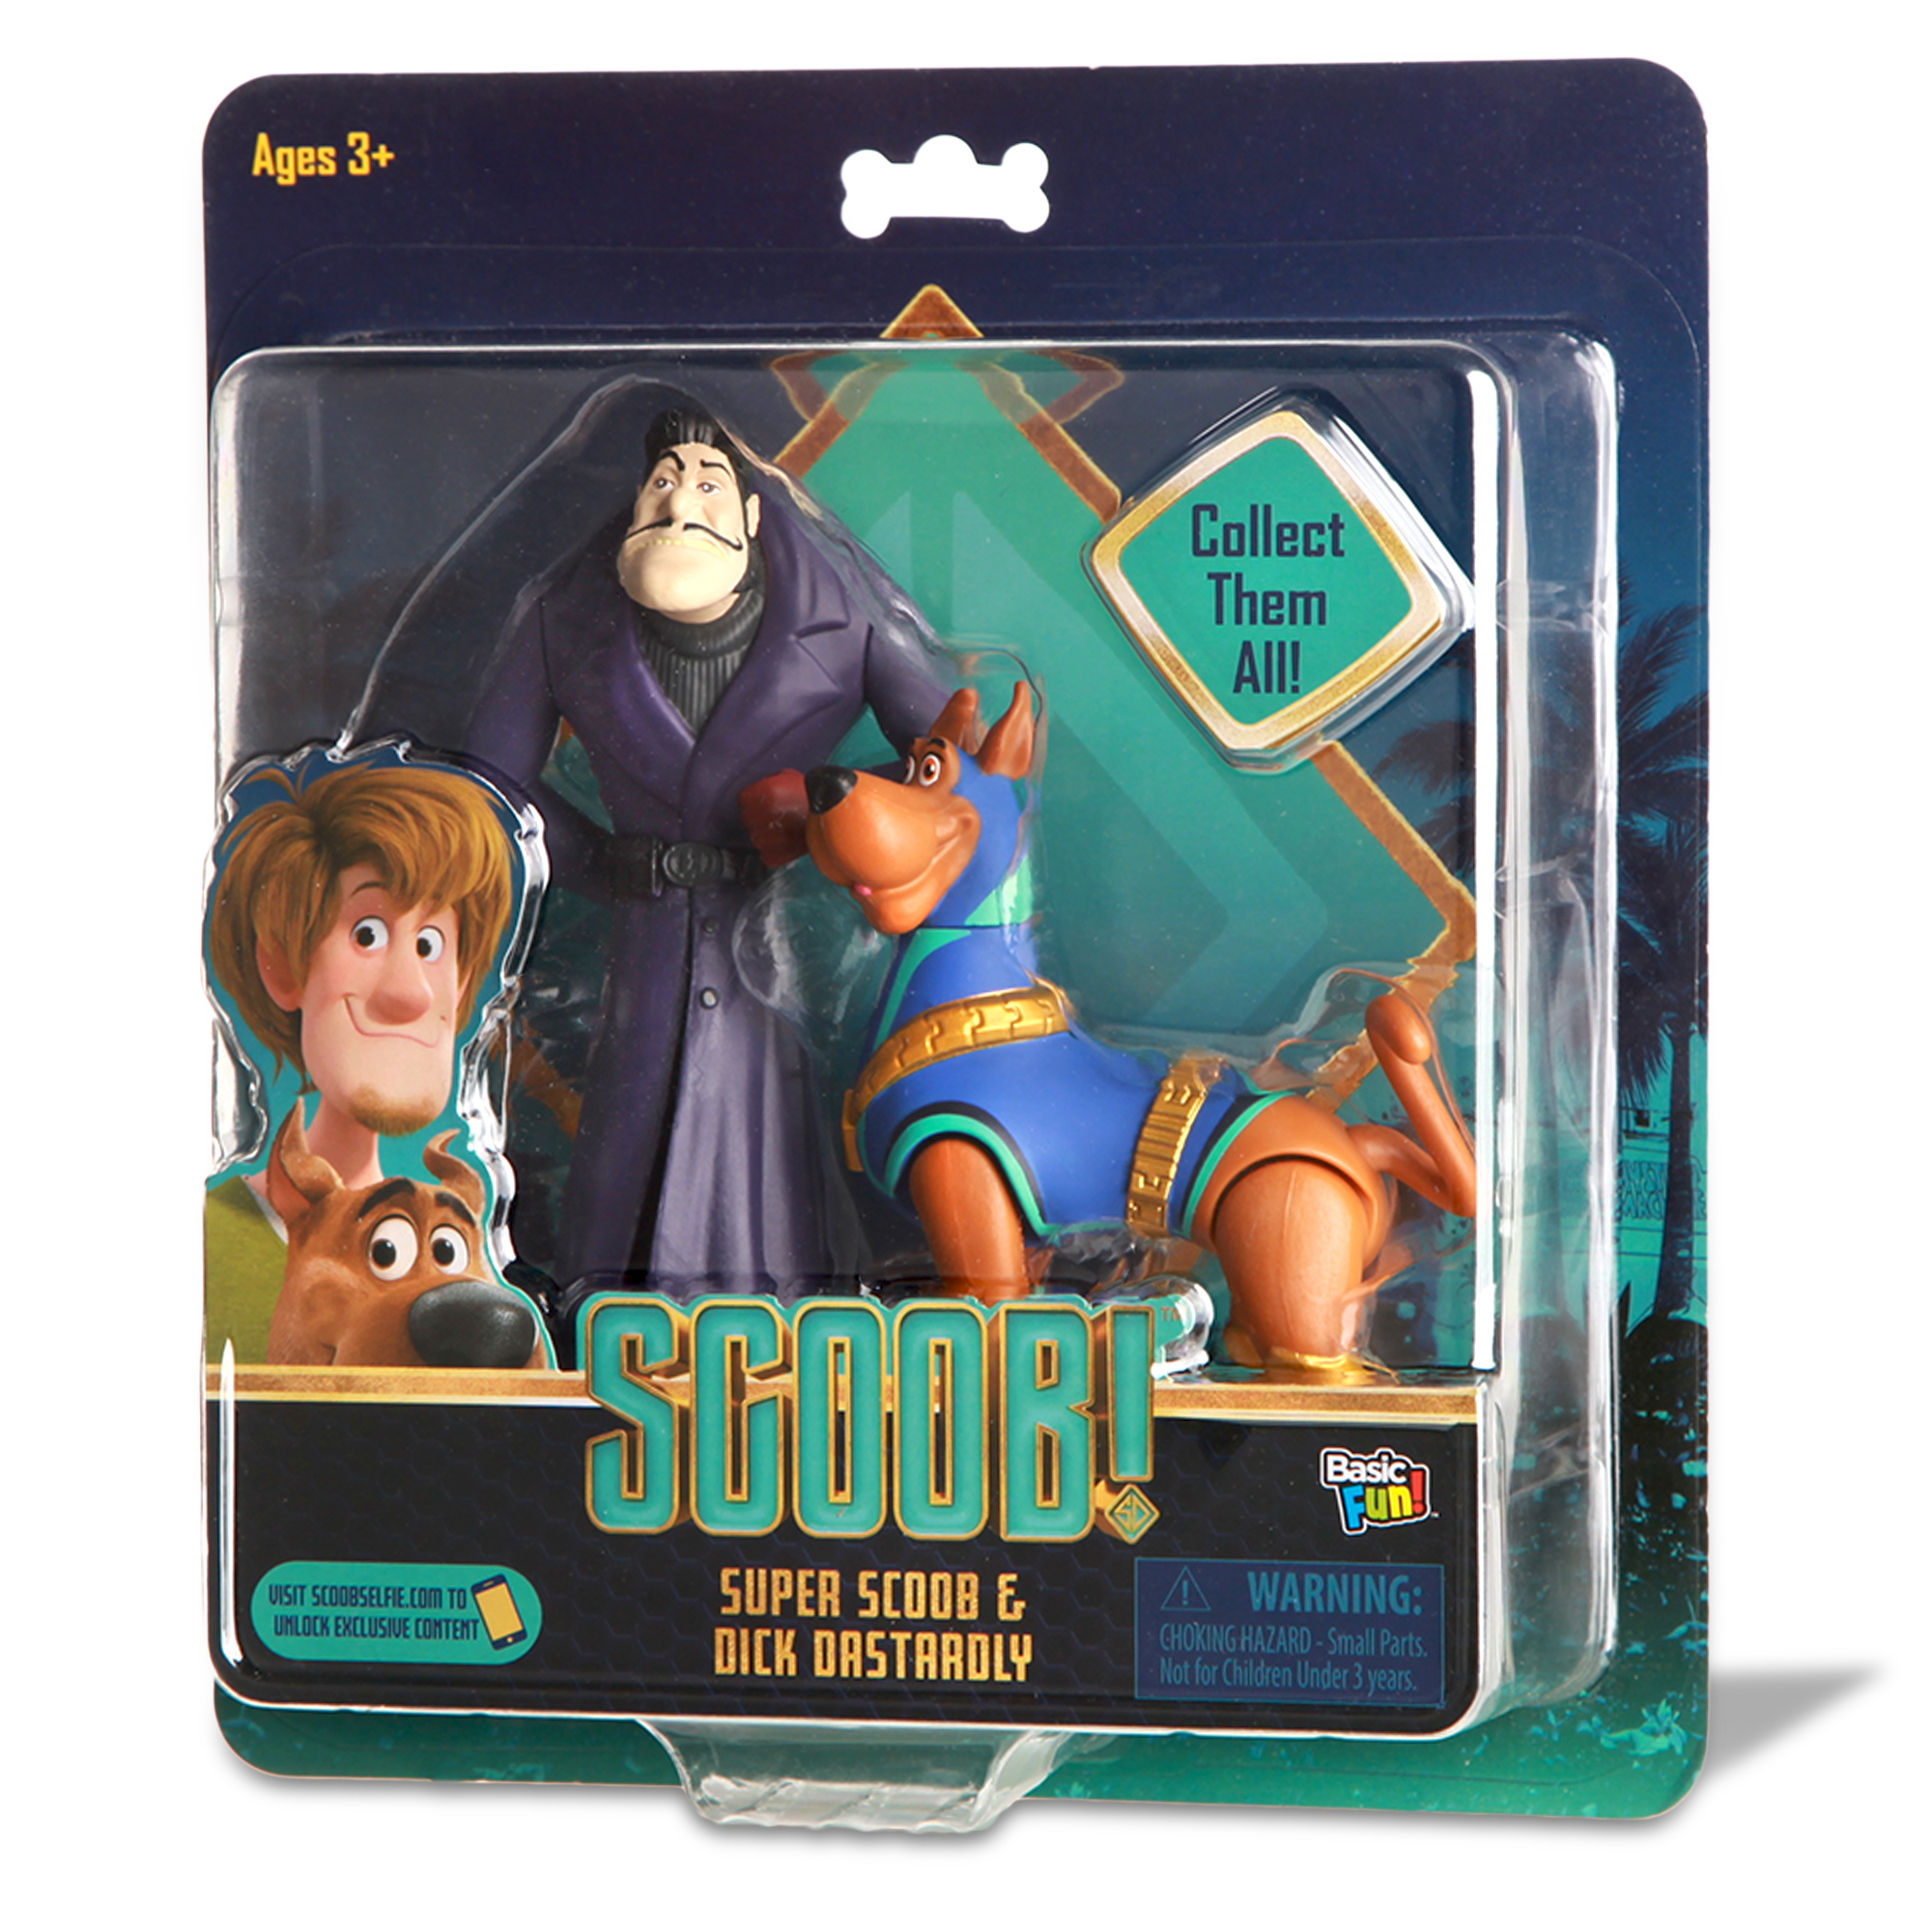 New Scoob Movie Action Figure 2 pack Scooby-Doo /& Captain Caveman Sealed